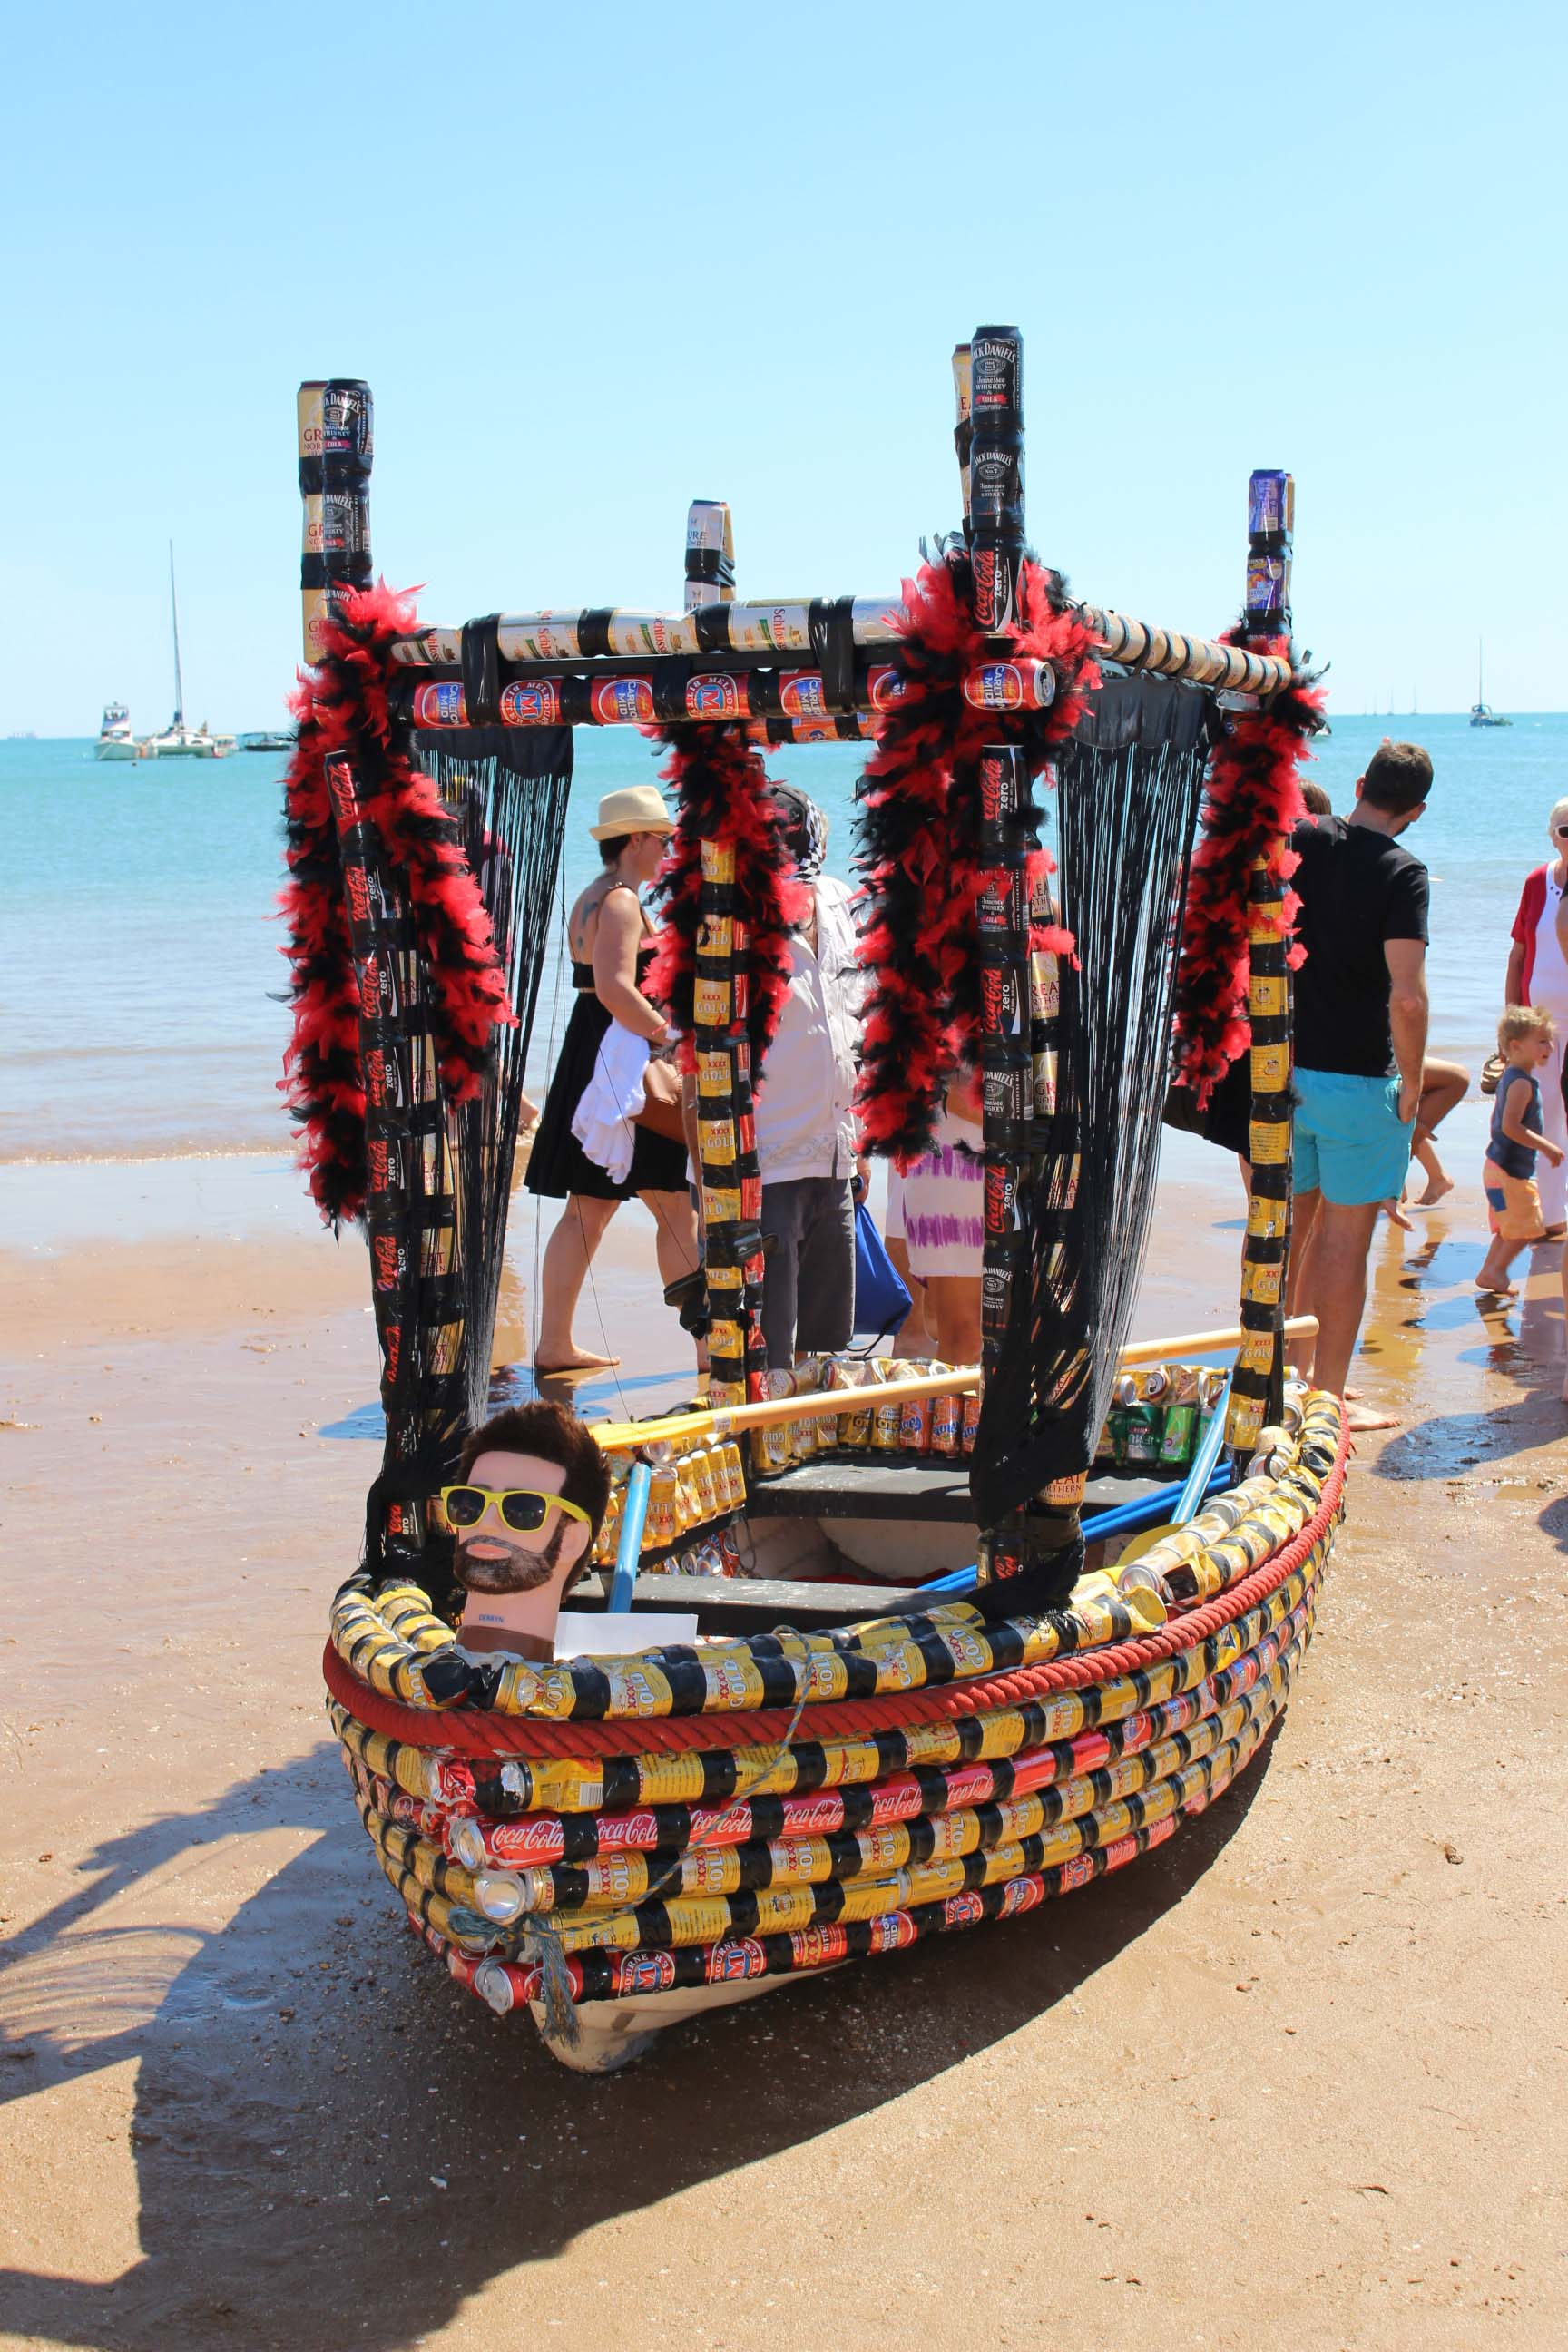 One of the vessels taking part in Darwin's Beer Can Regatta.